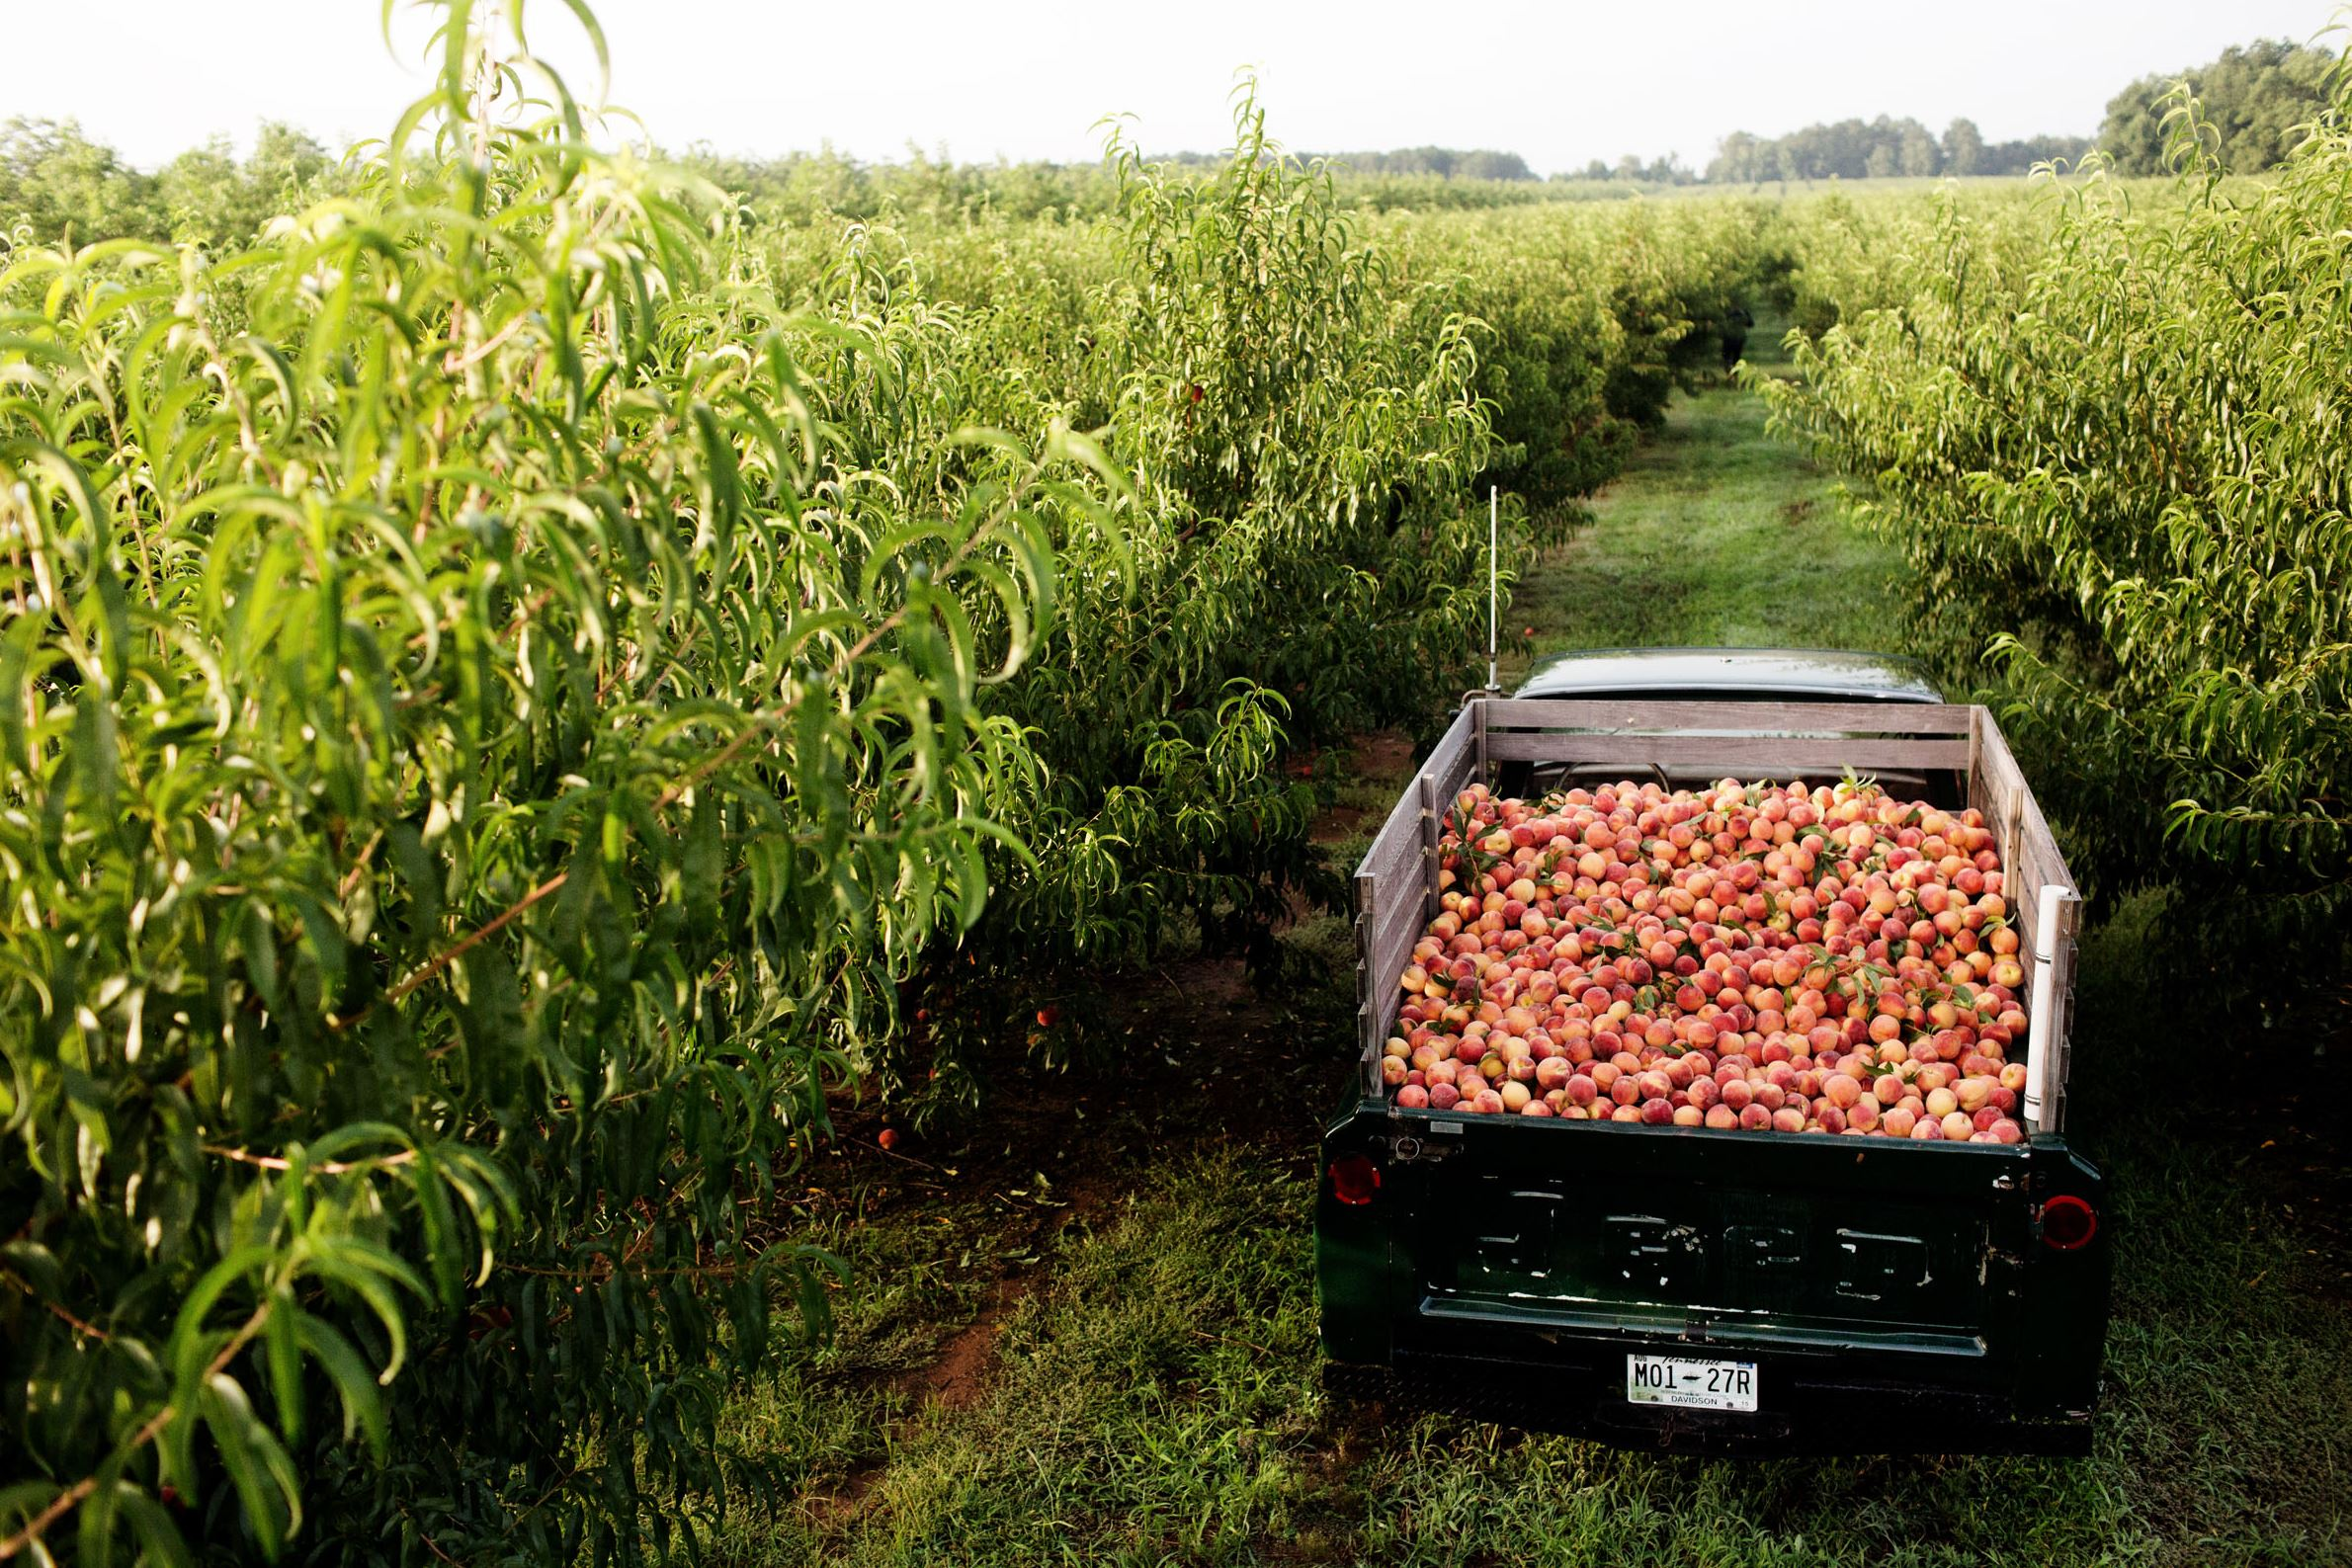 Georgia peach crop faces nearly 80 percent loss this year